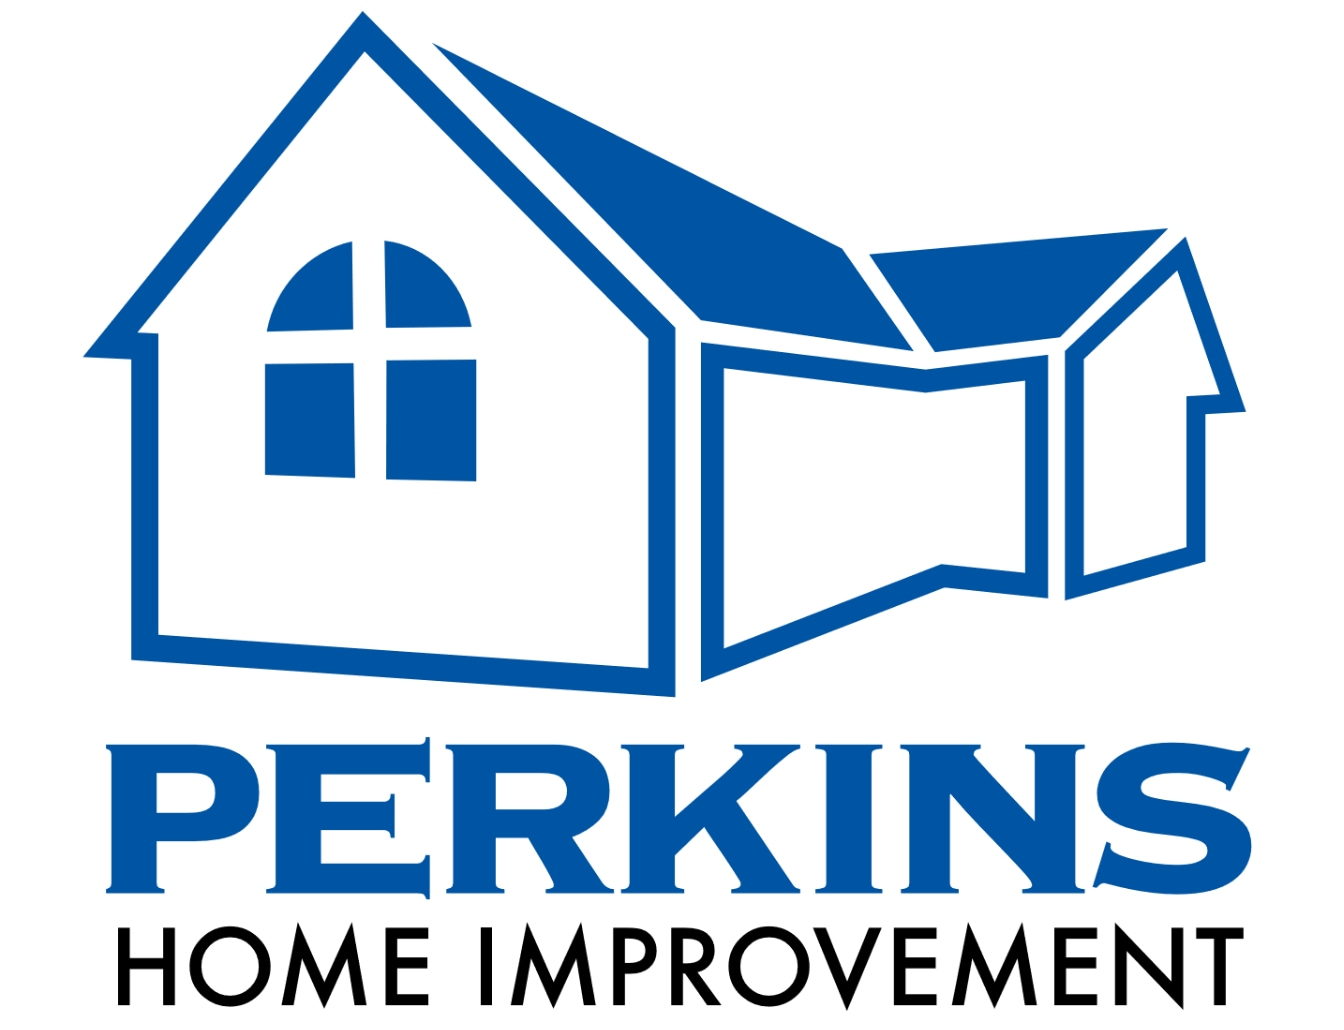 Perkins Home Improvement